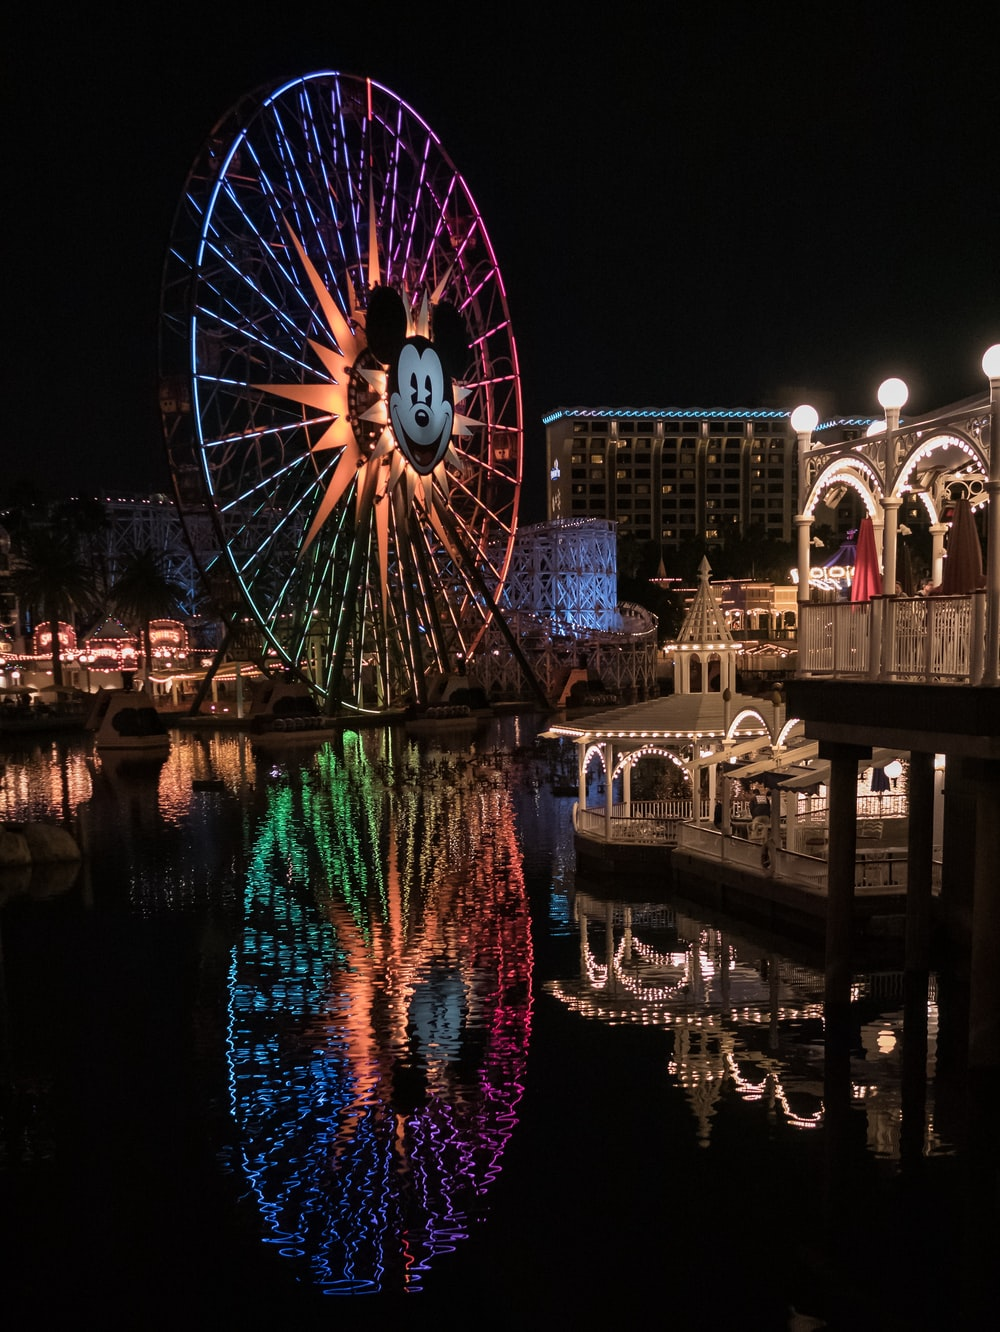 blue, pink, and orange Mickey Mouse ferries wheel at night time